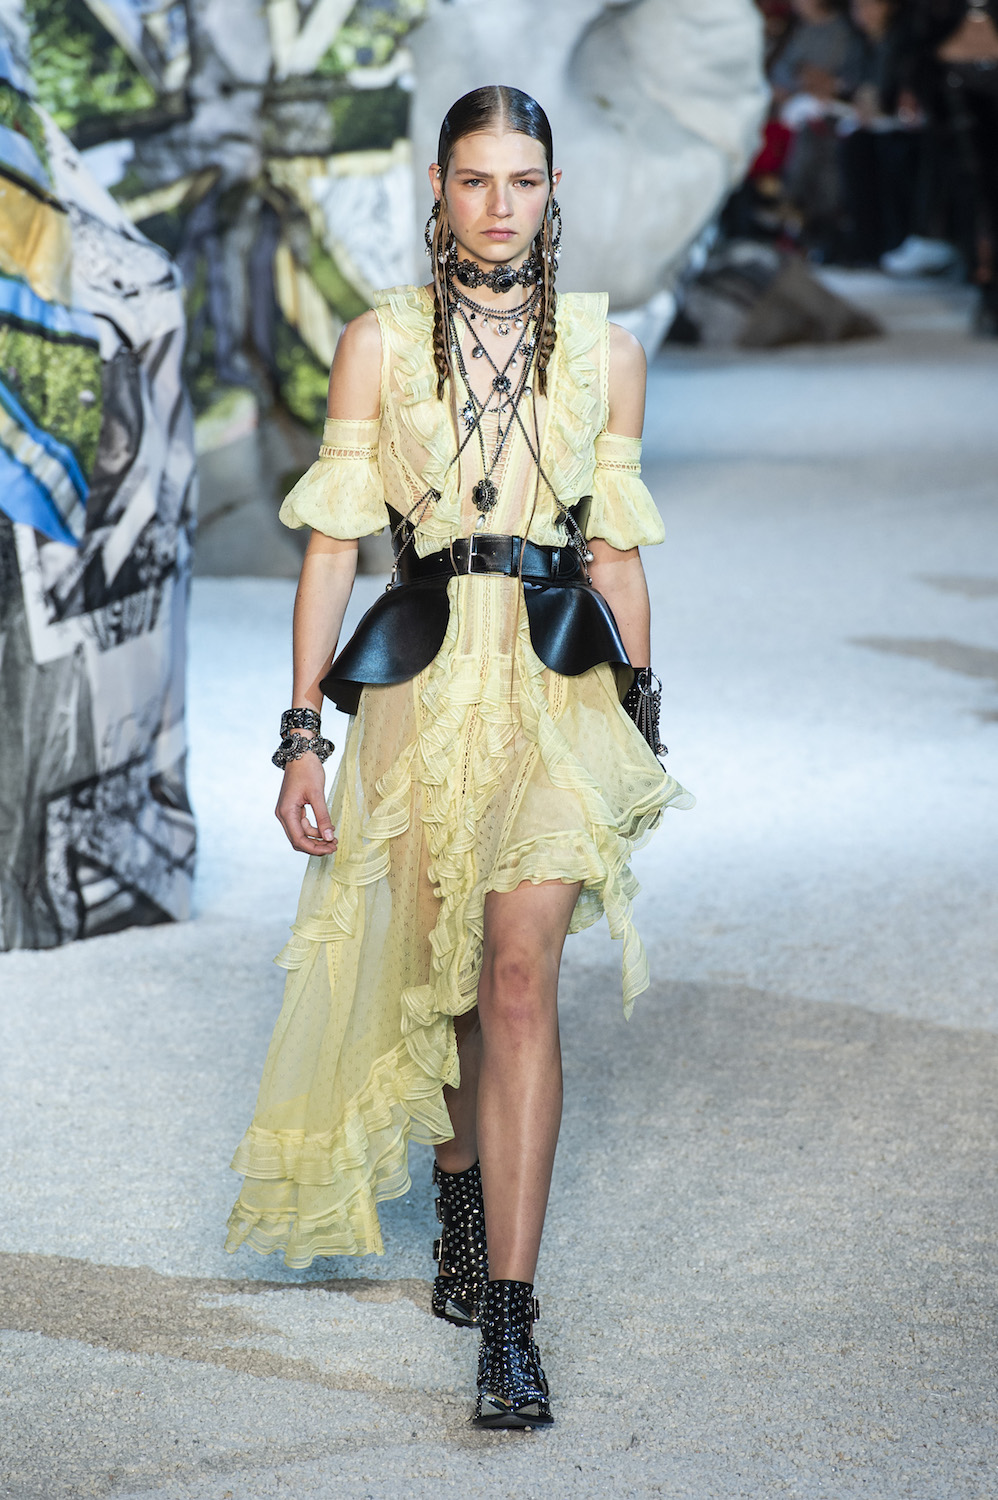 Alexander McQueen s Spring Collection Reminds Us of Fashion s Fantasy Side 9218f86bfd60c